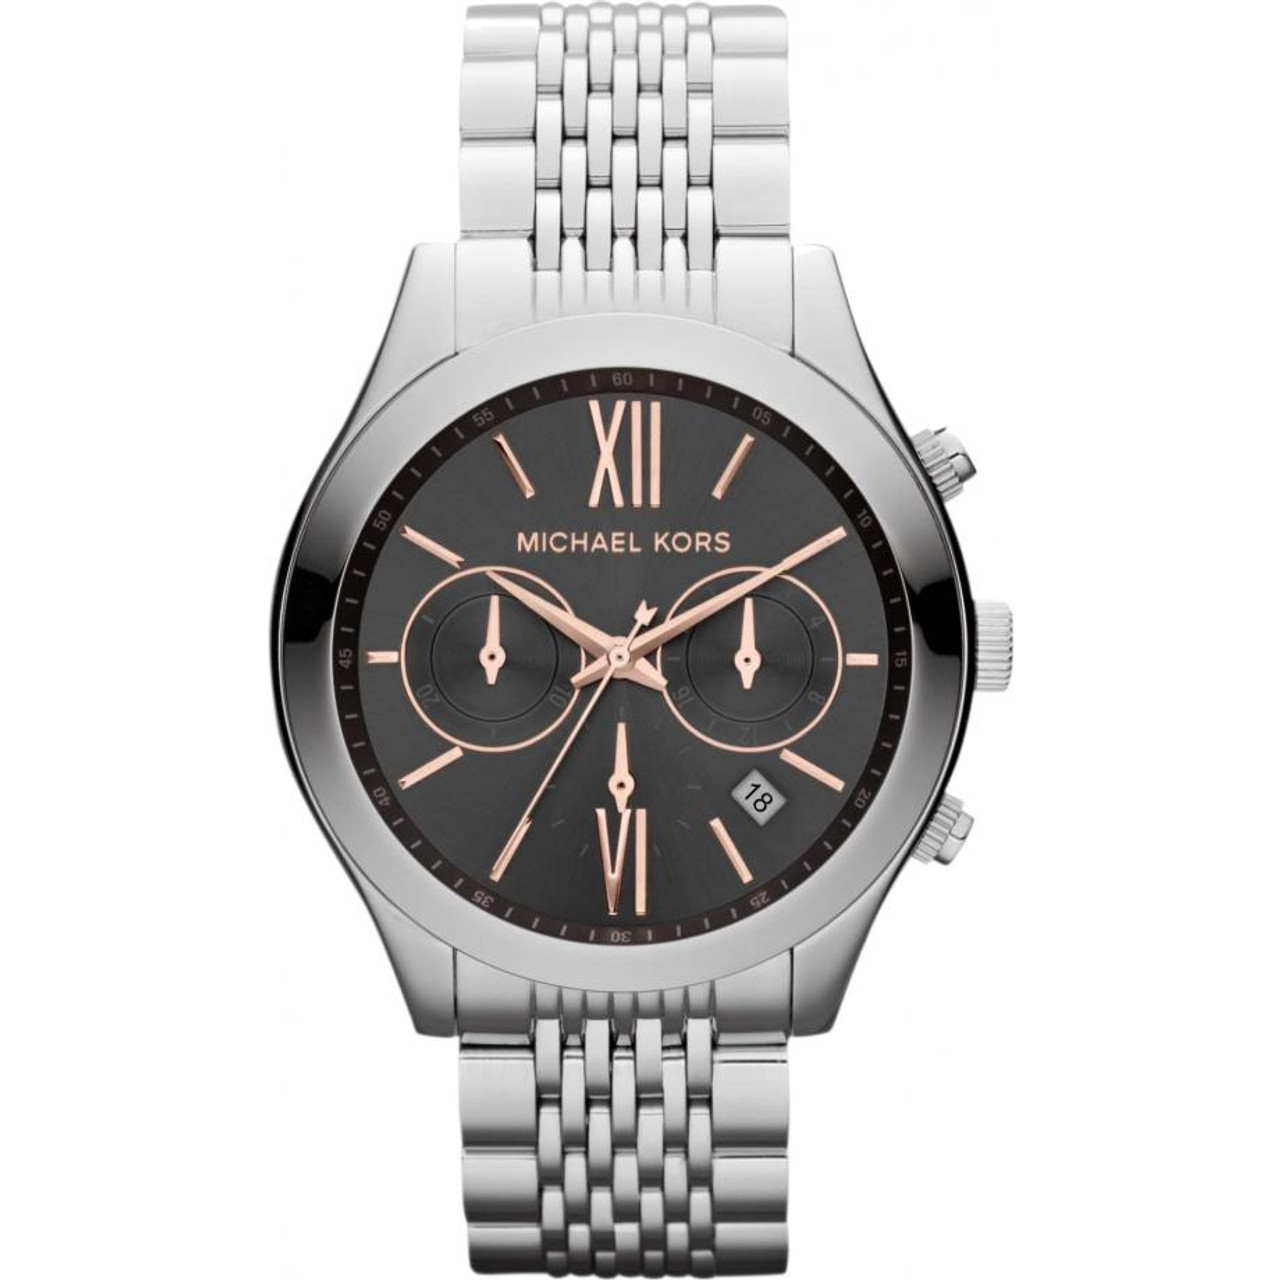 watch en portia hei r qlt wid michael gold sharpen resmode op kors ie tone watches